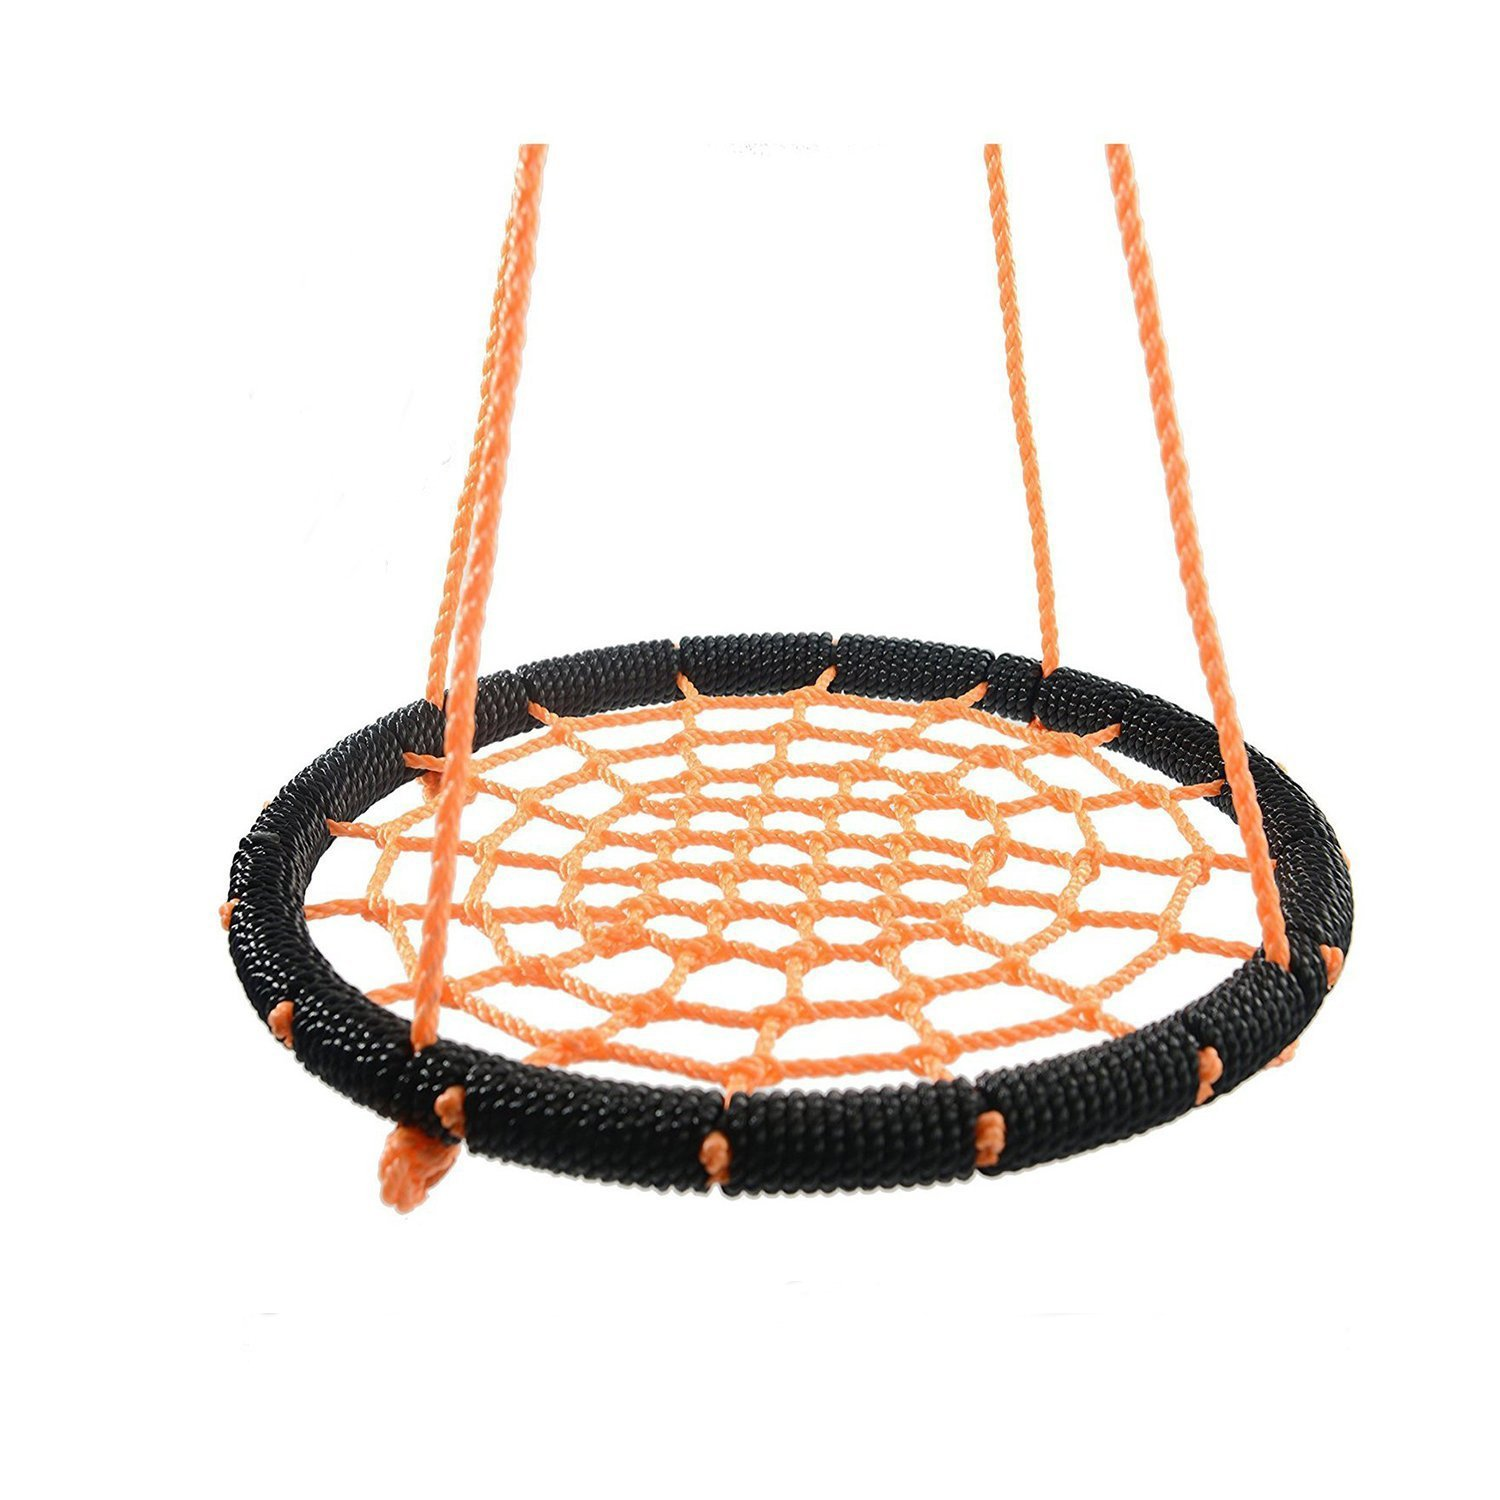 Outroad Web Swing - Great for Tree, Playground, Playroom - 24 Inch Outdoor Spider Net Swing for Kids, Orange, with 2 Extra 60 inch Hanging Straps